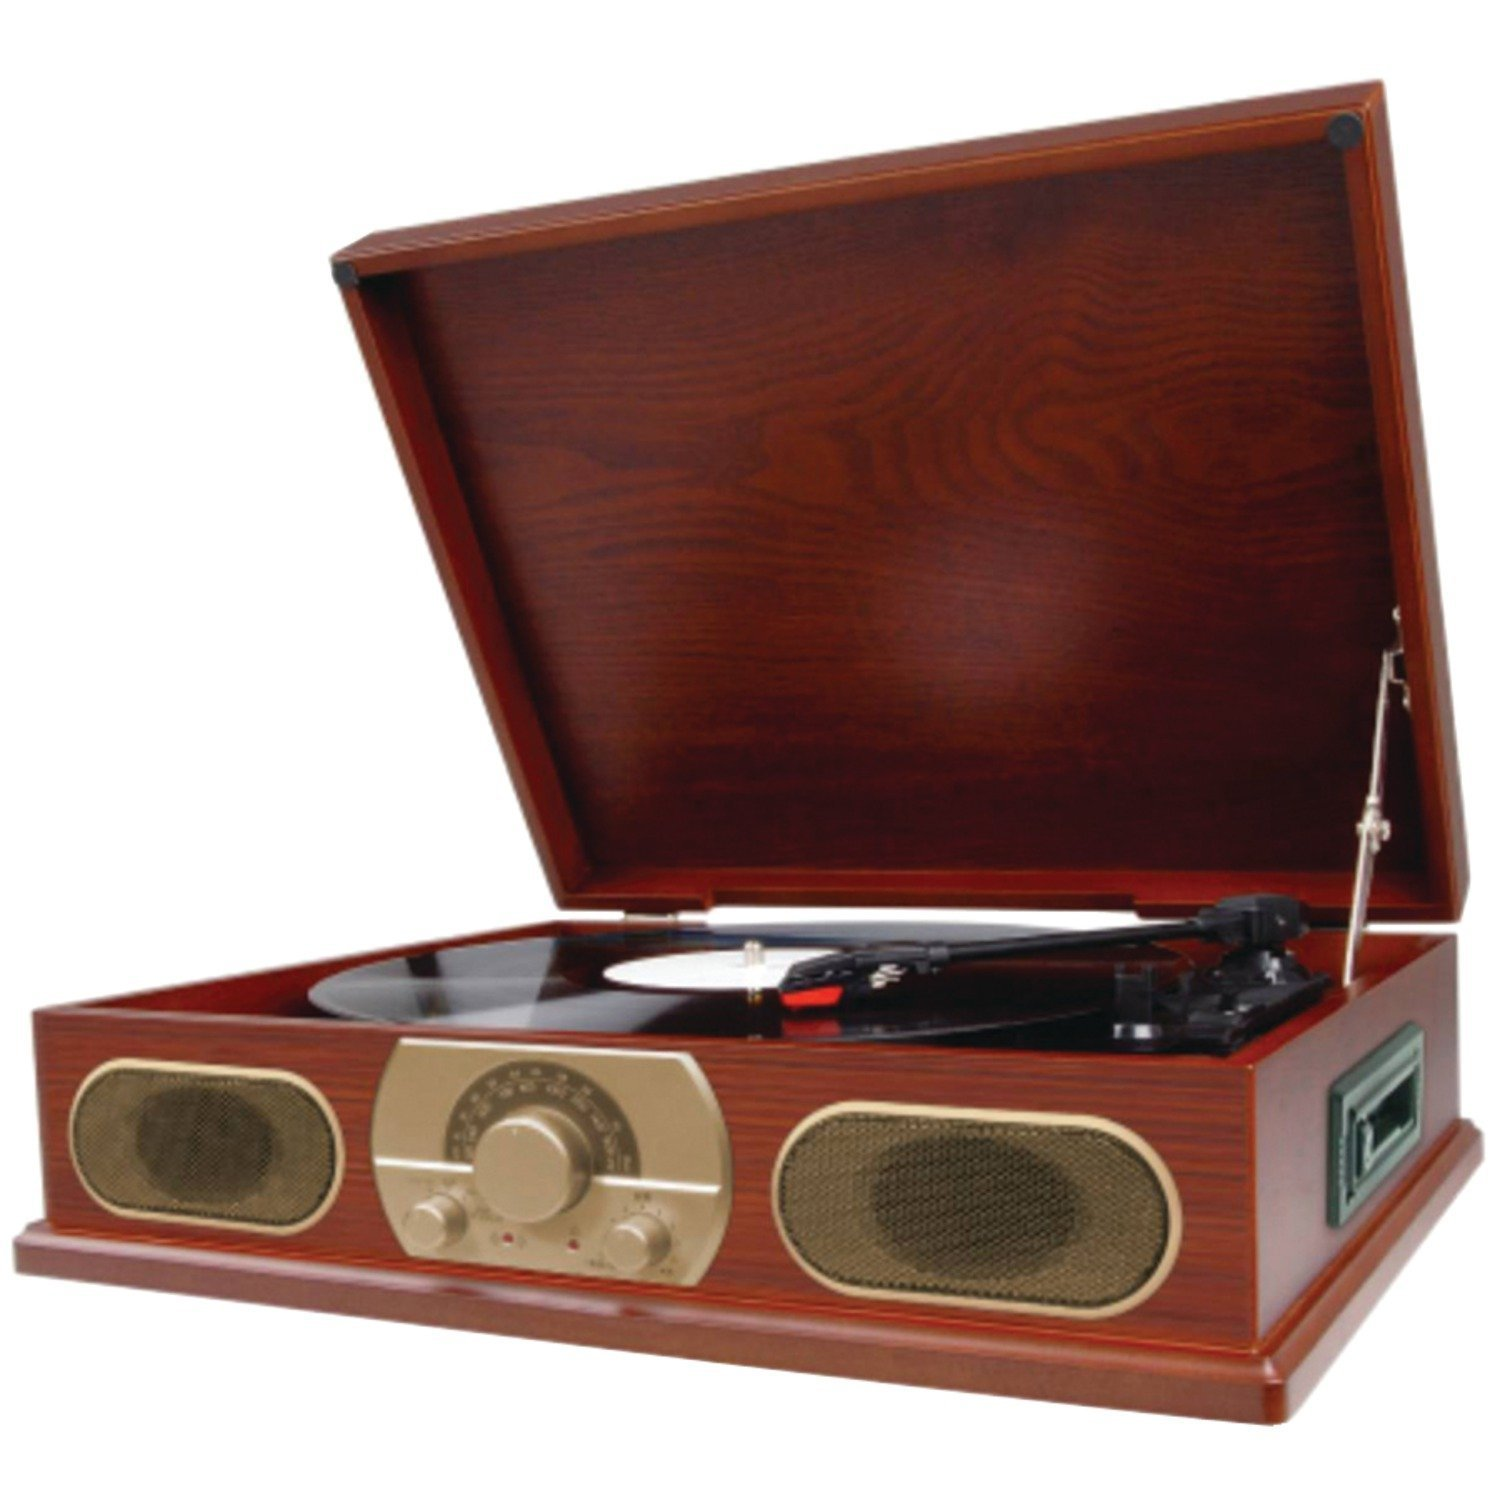 Record Player For Girls, Spectra Studebaker Nostalgic Small Portable Turntable